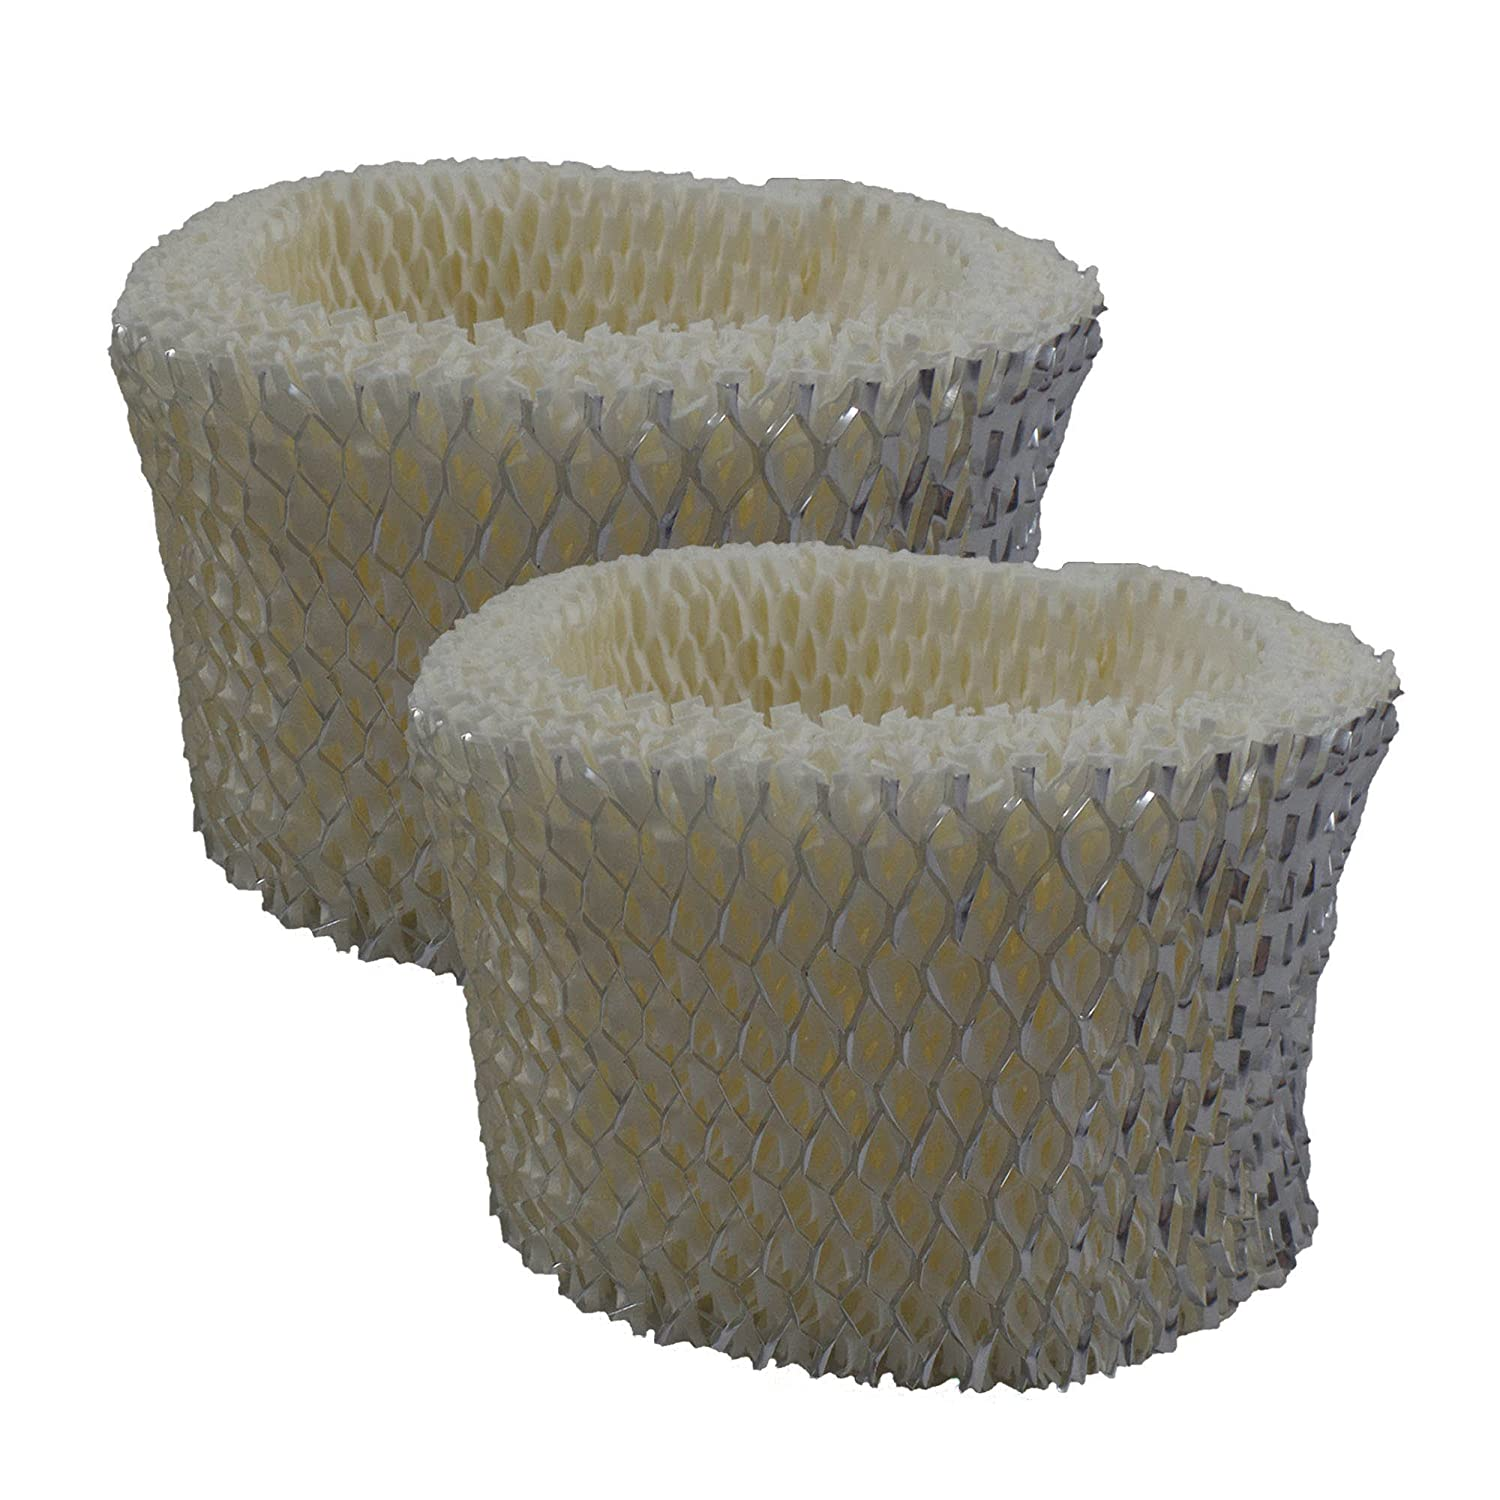 Air Filter Factory 2 Pack Compatible Humidifier Wick Filters For Sunbeam SCM1100, SCM1701, SCM1702, SCM1762, SCM2409